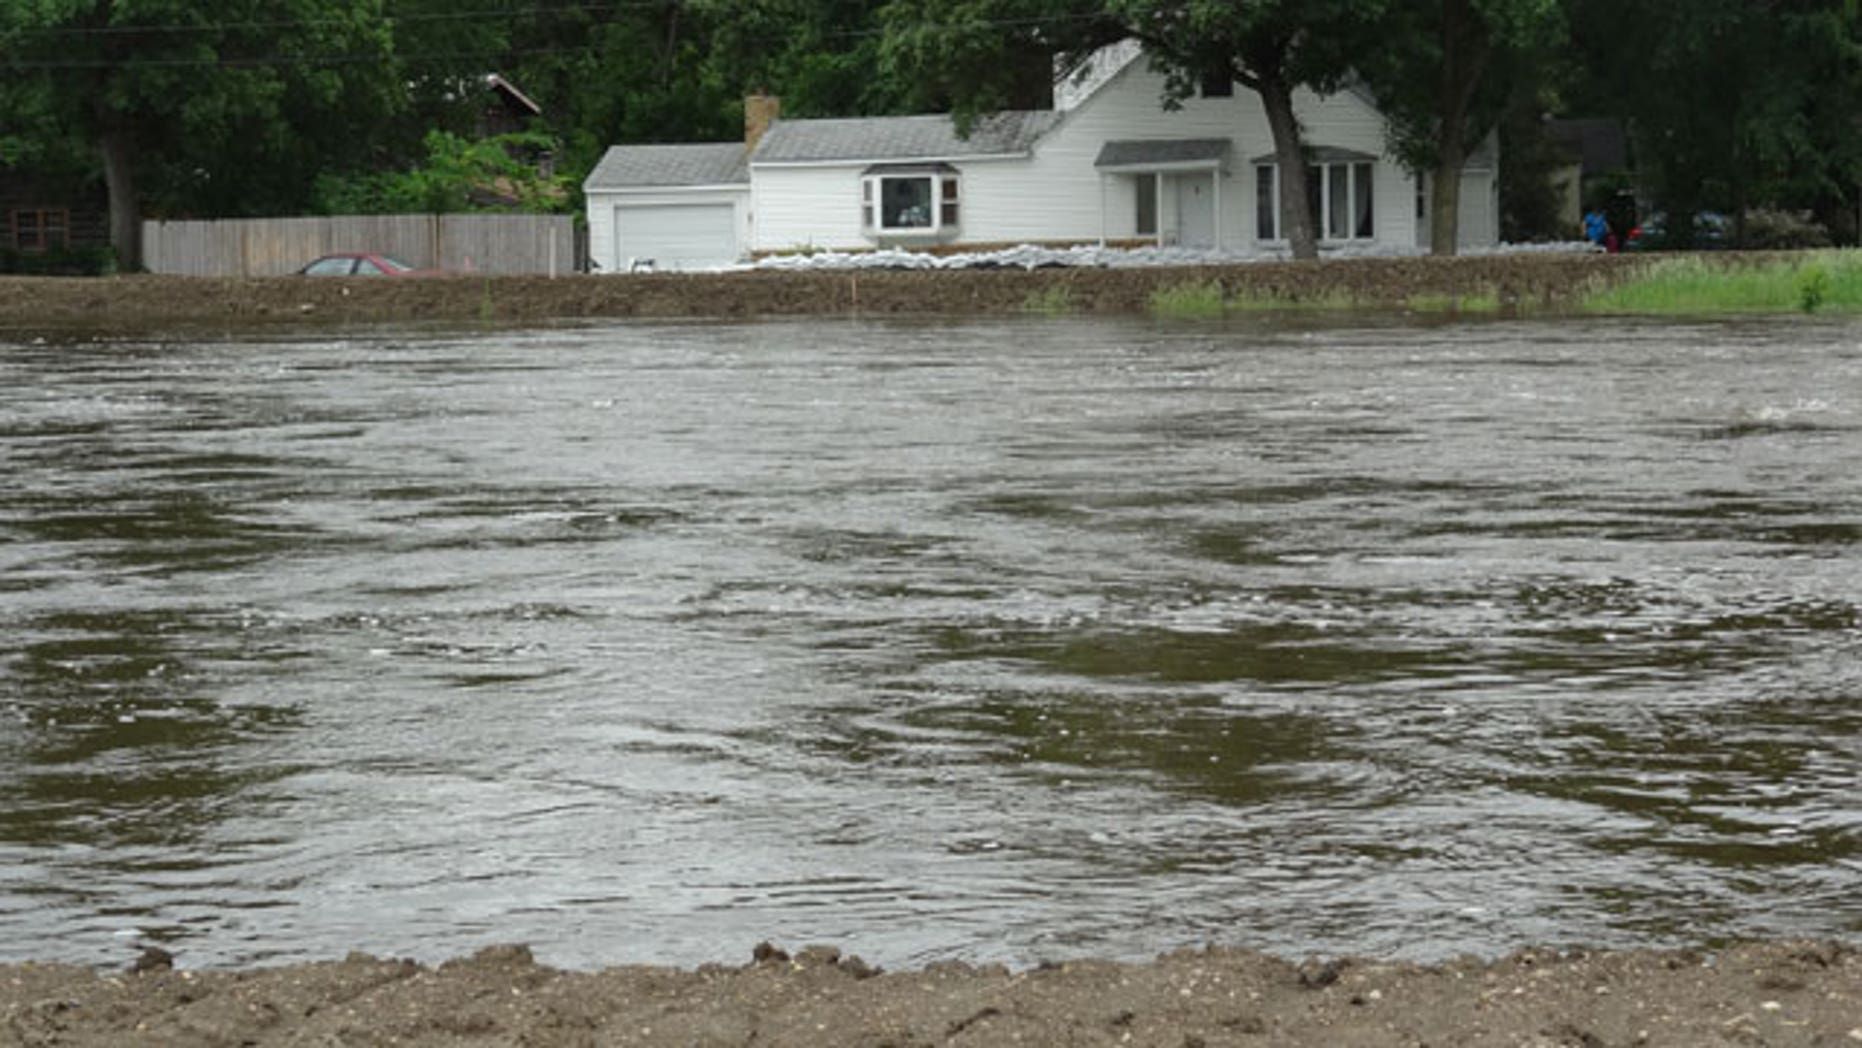 The Souris River passes near a home Tuesday, June 21, 2011, in Minot, N.D. About 11,000 Minot residents are being ordered to leave their homes even earlier than expected this week as the river gets closer to swamping the North Dakota city with the worst flooding in four decades, officials said Tuesday.